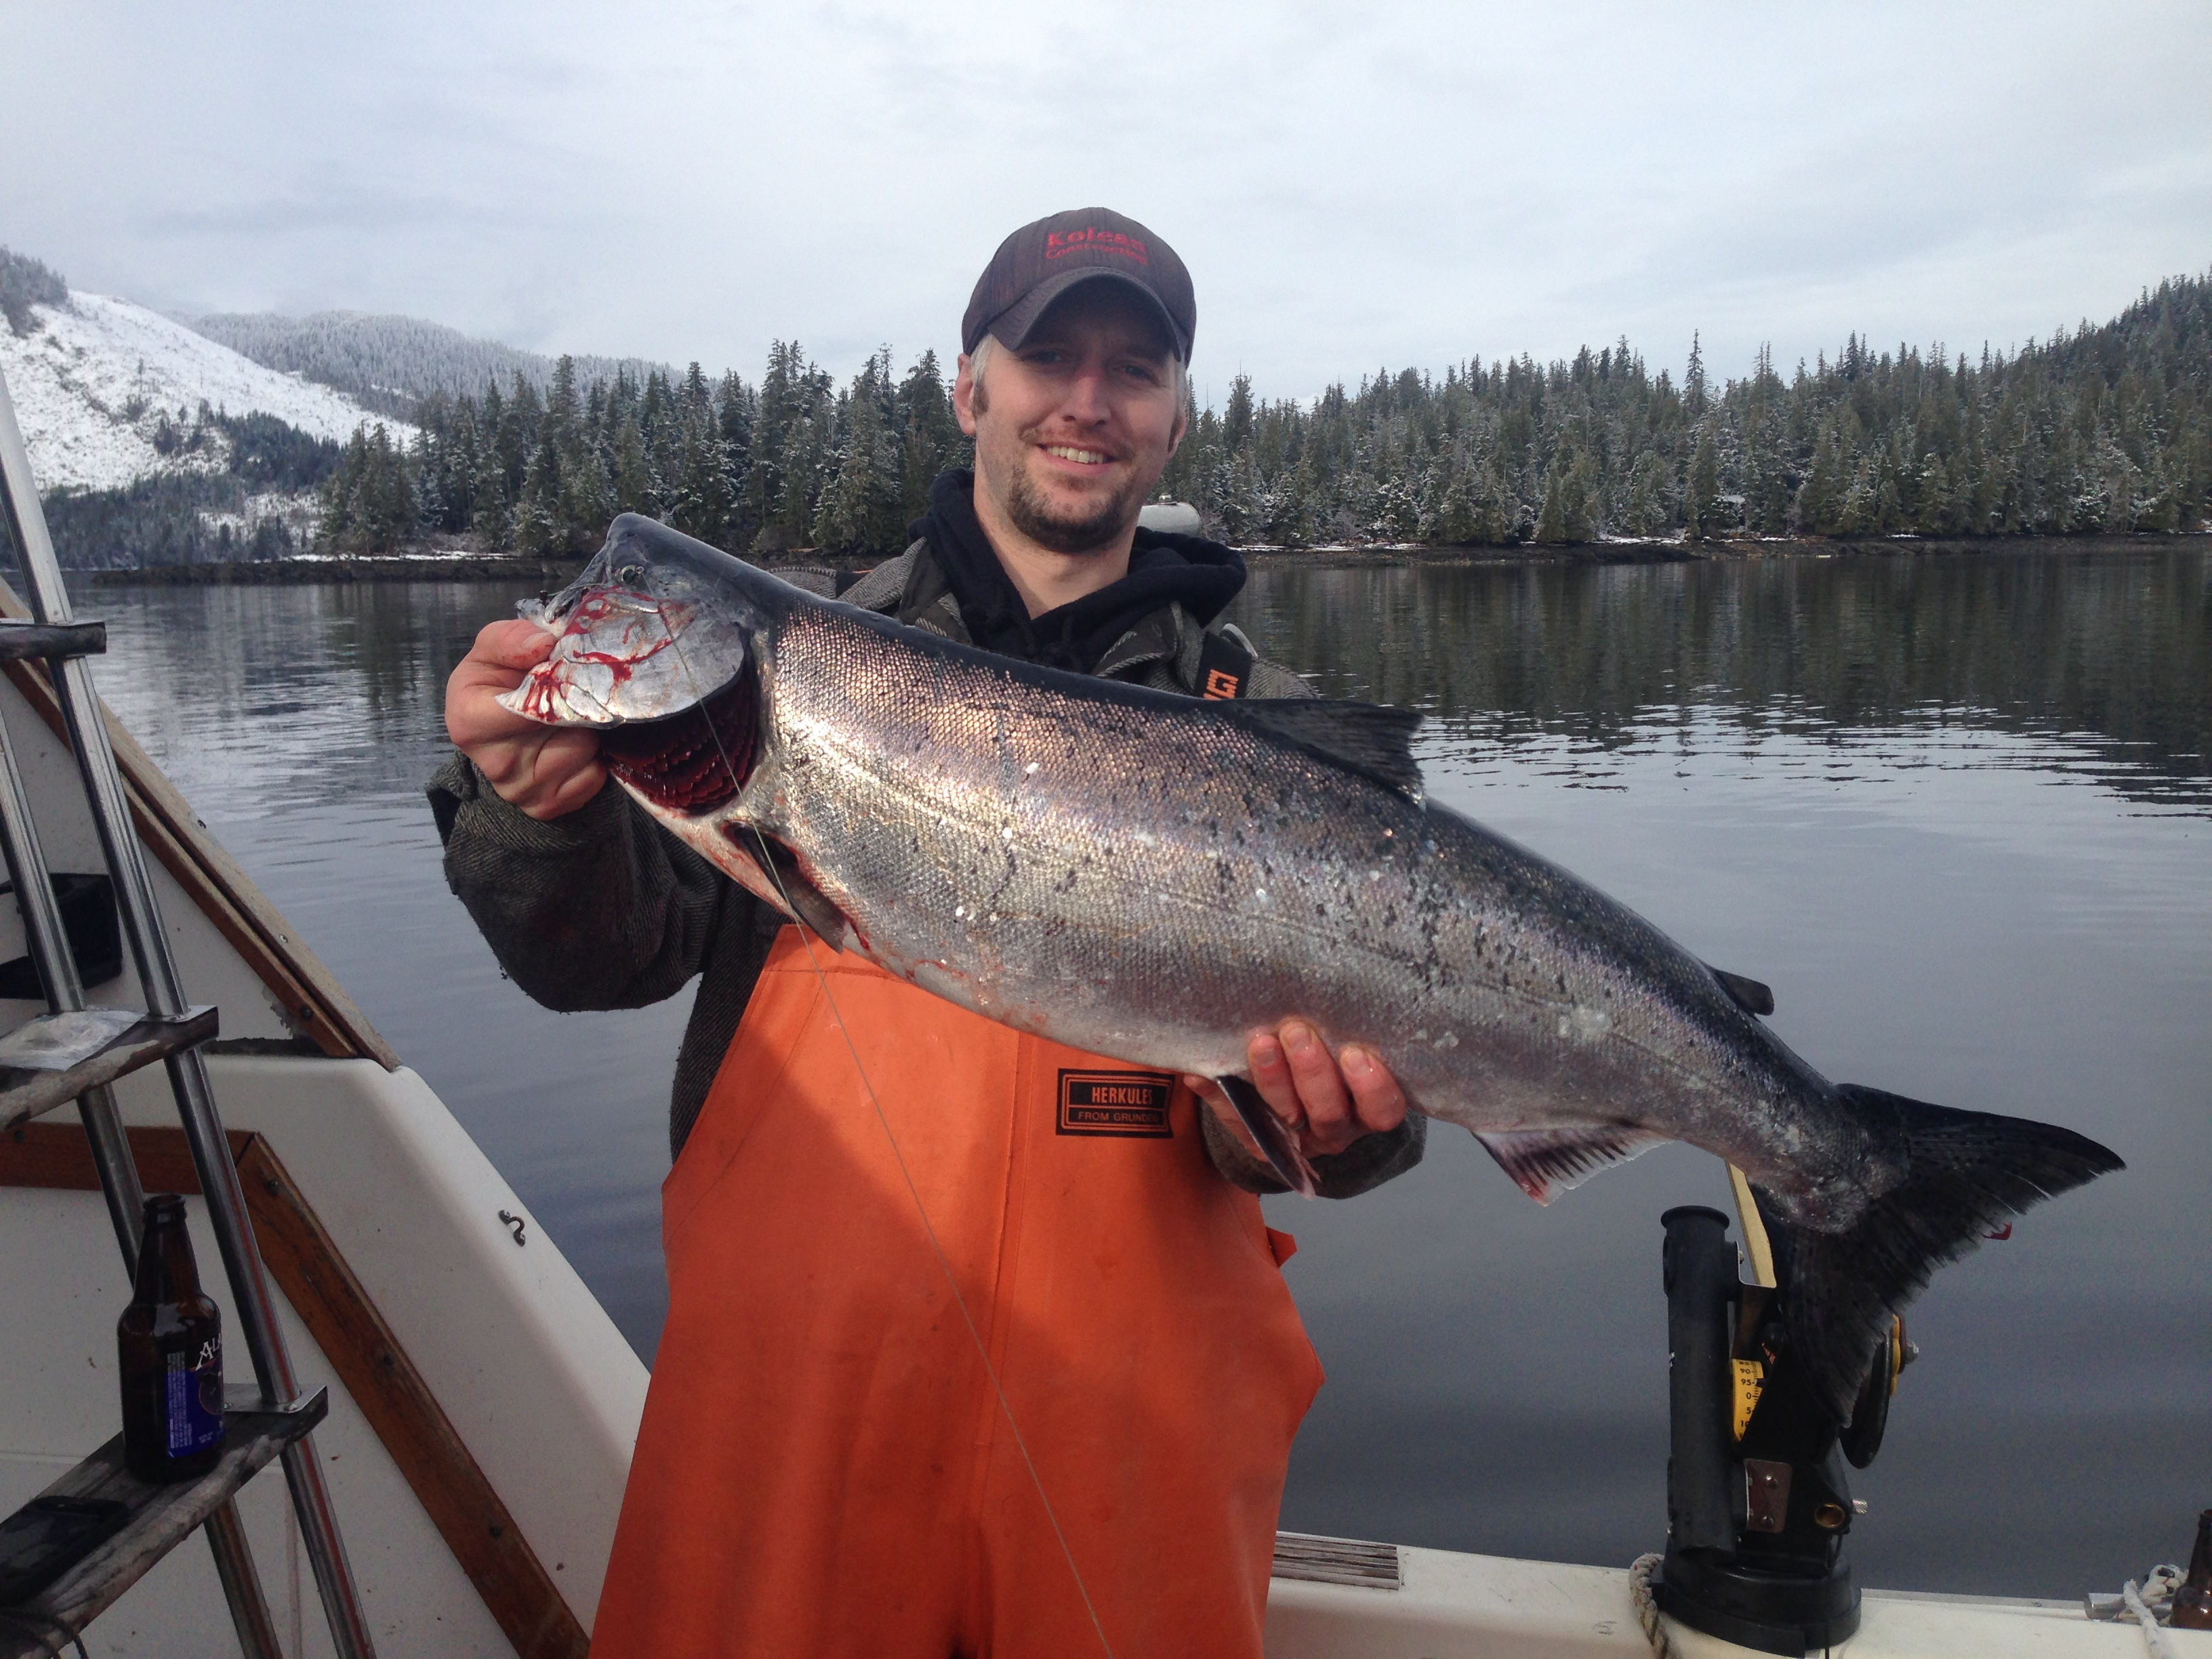 Ketchikan fishing charters for salmon and halibut for Alaskan salmon fishing